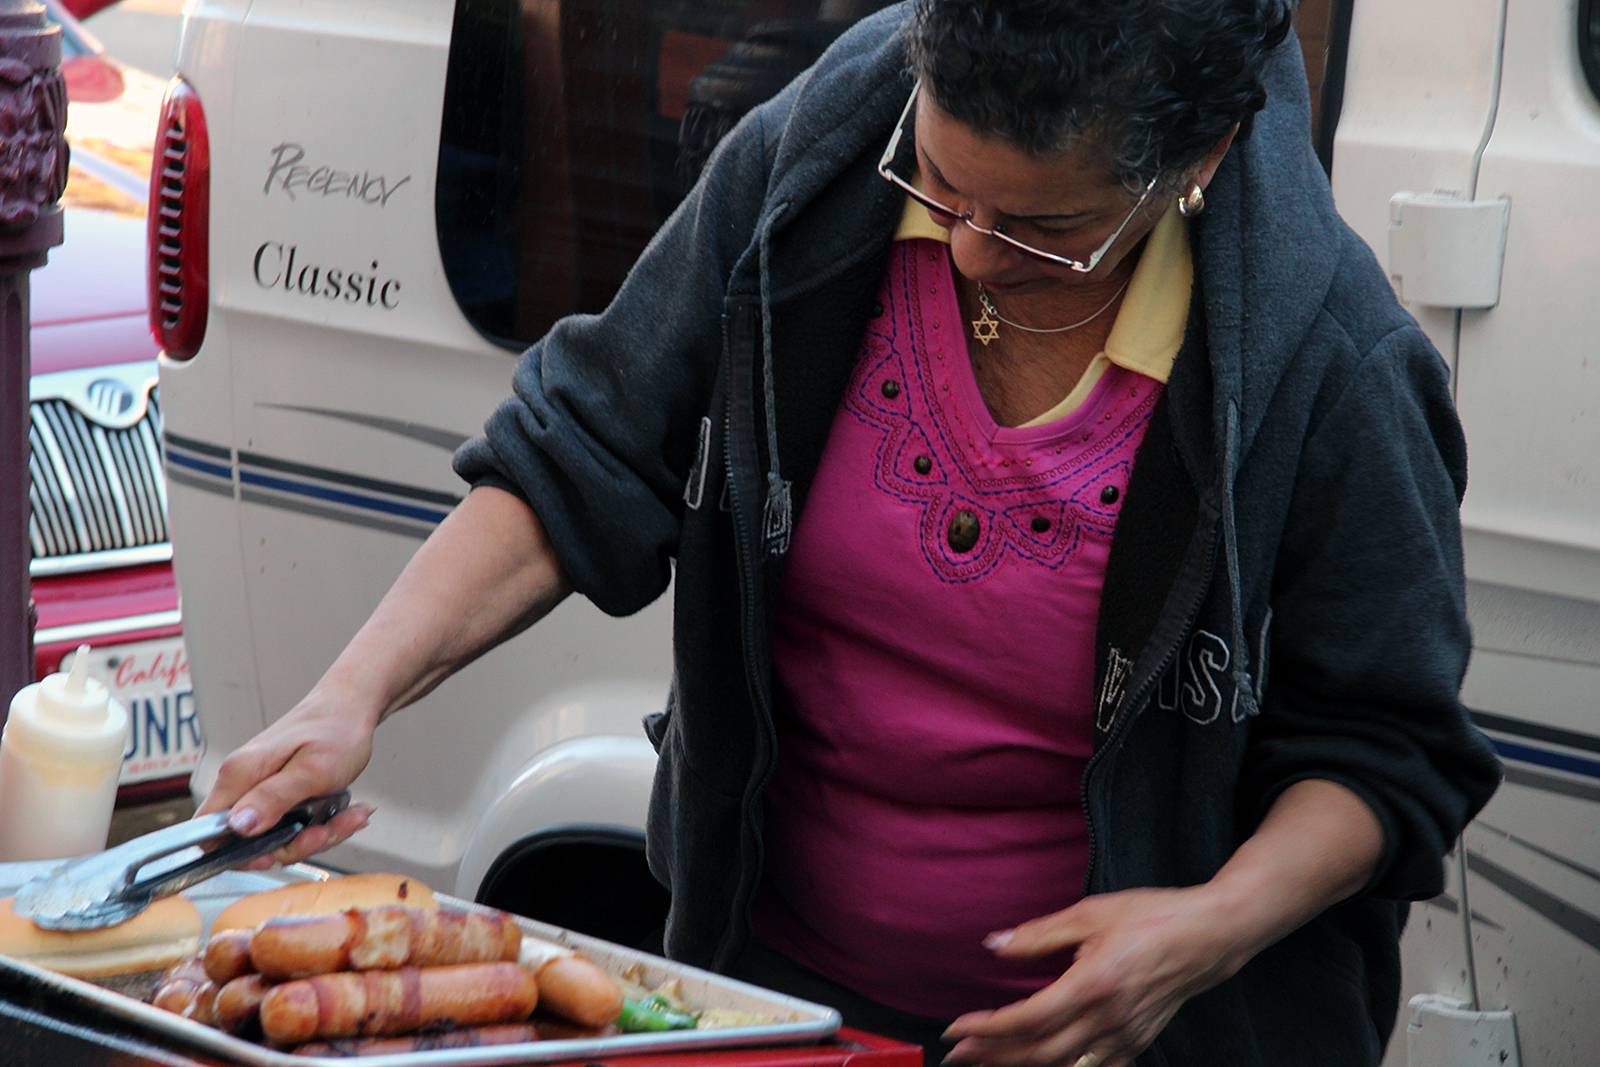 A woman makes hot dogs on Mission Street.